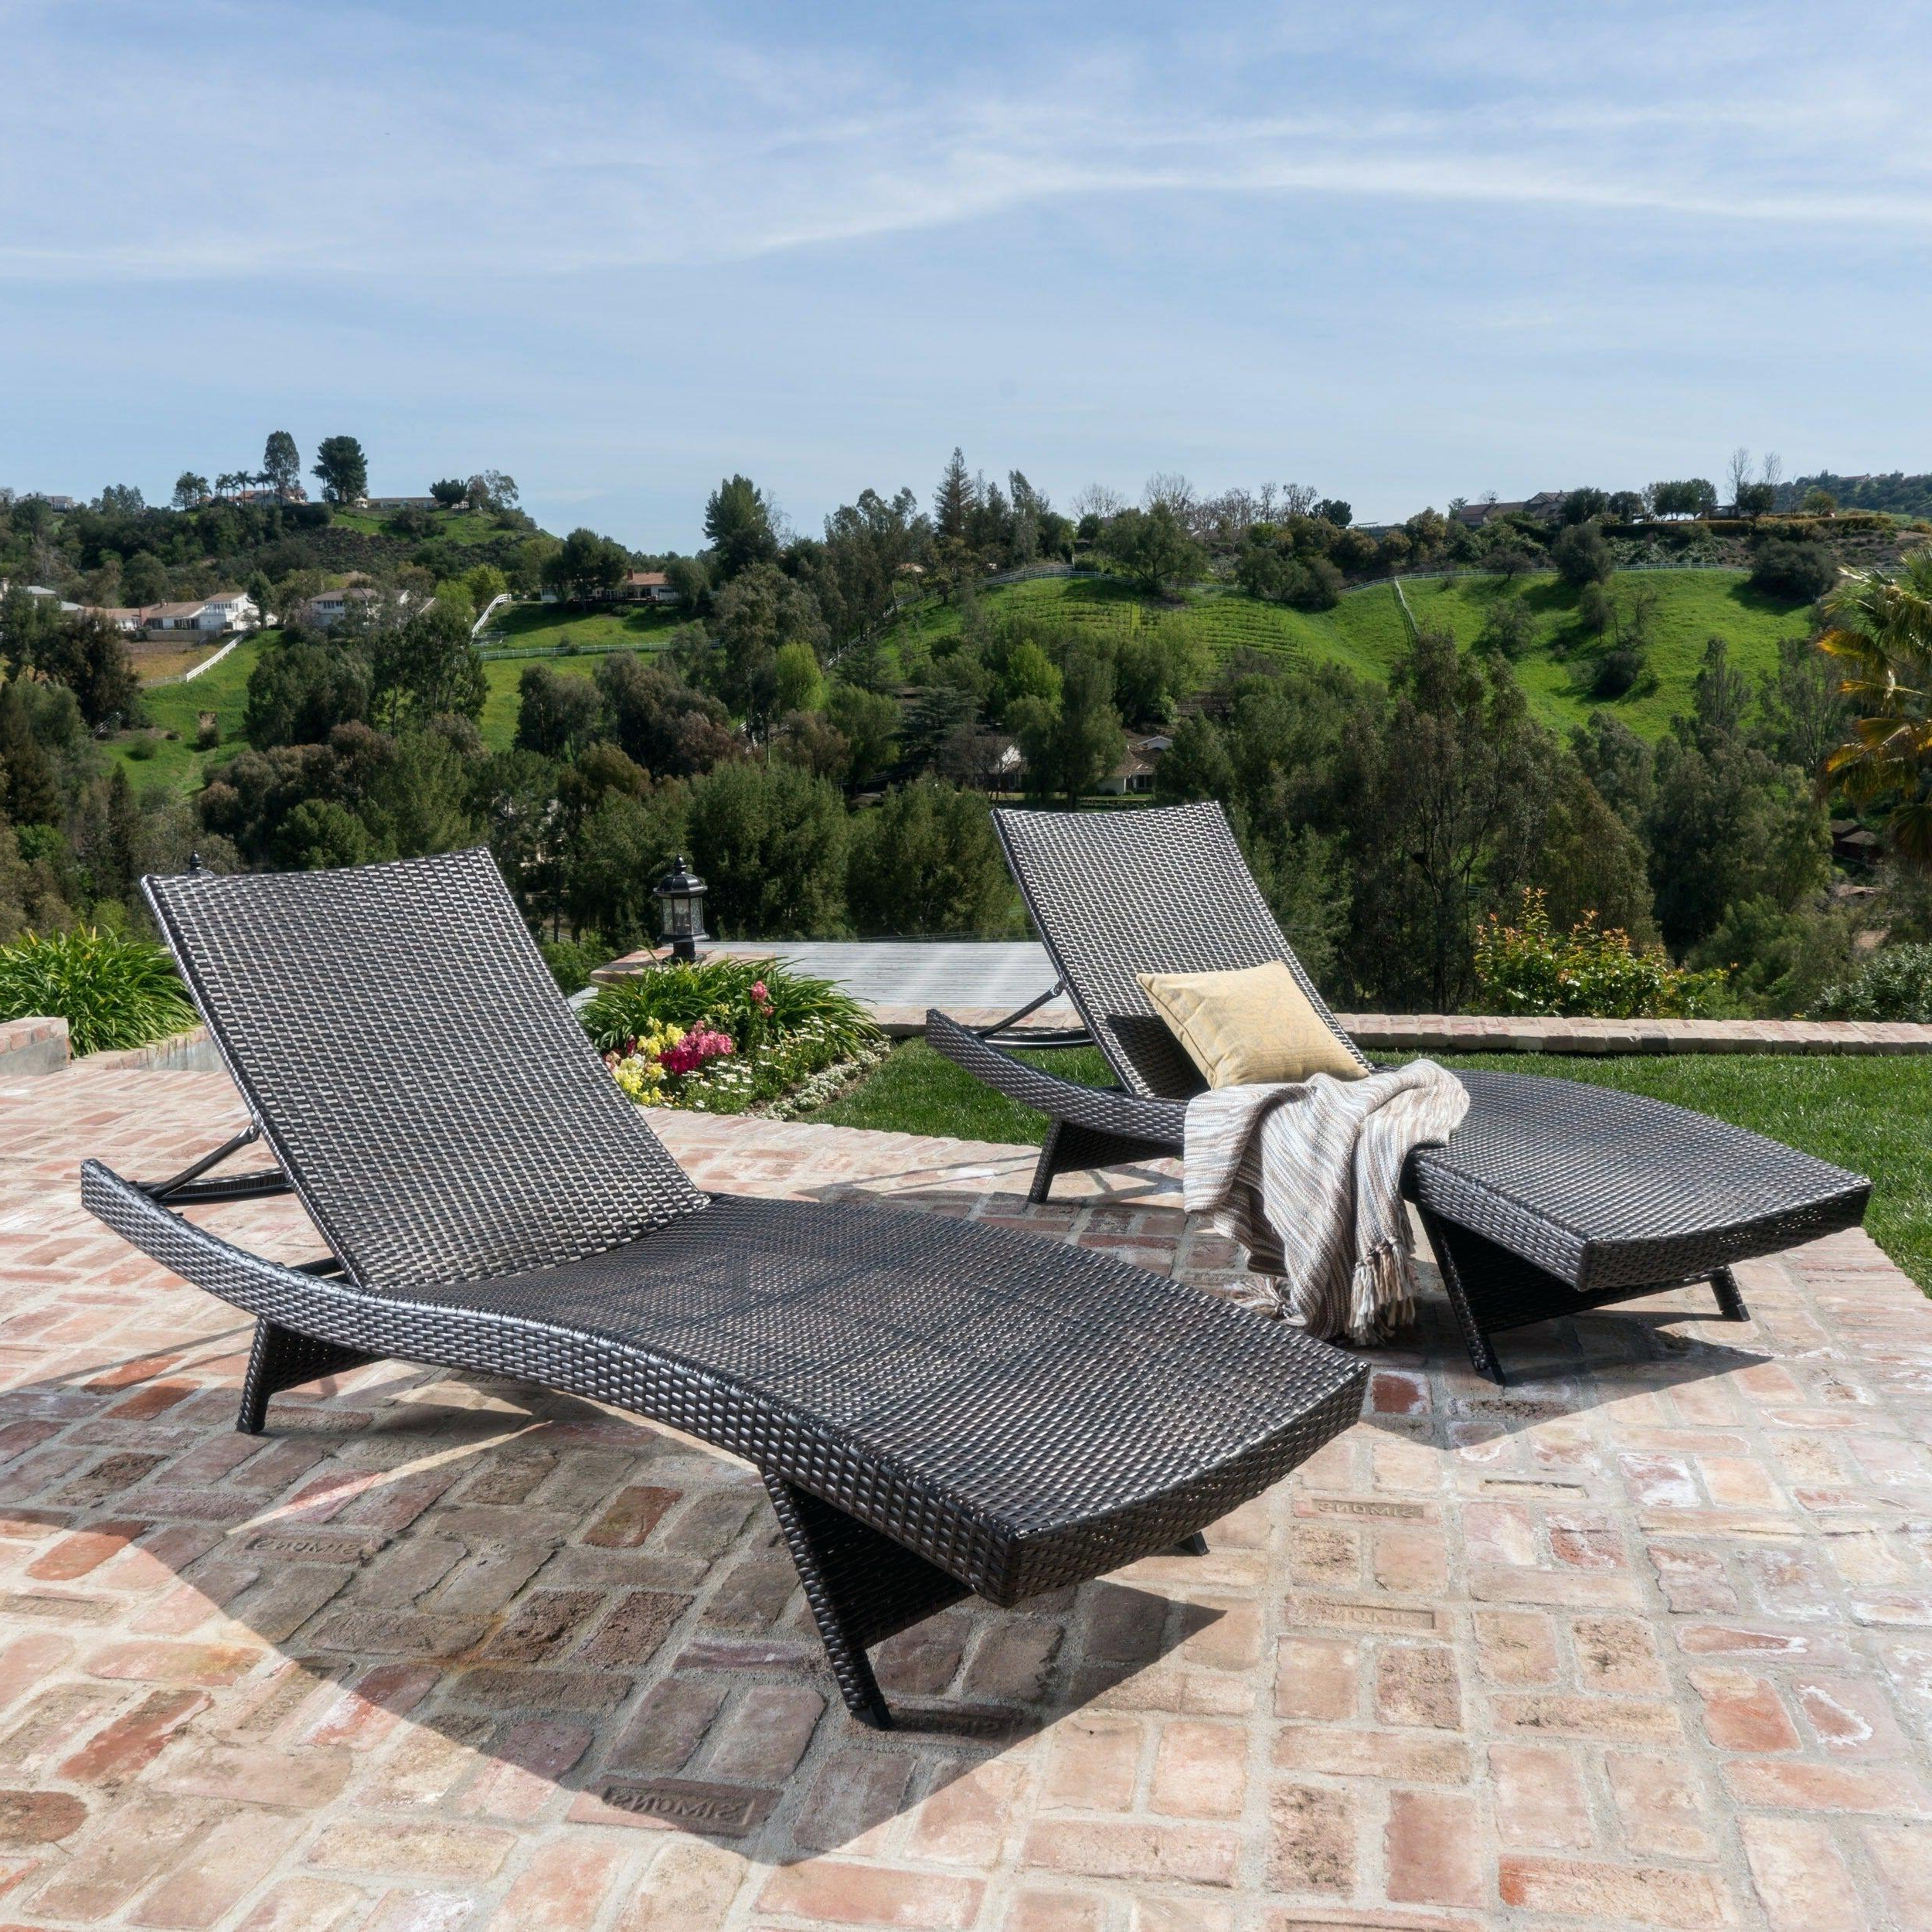 Preferred Chaise Lounge Patio Lowes Patio Chaise Lounge Chairs Chaise In Cosco Outdoor Aluminum Chaise Lounge Chairs (View 8 of 25)